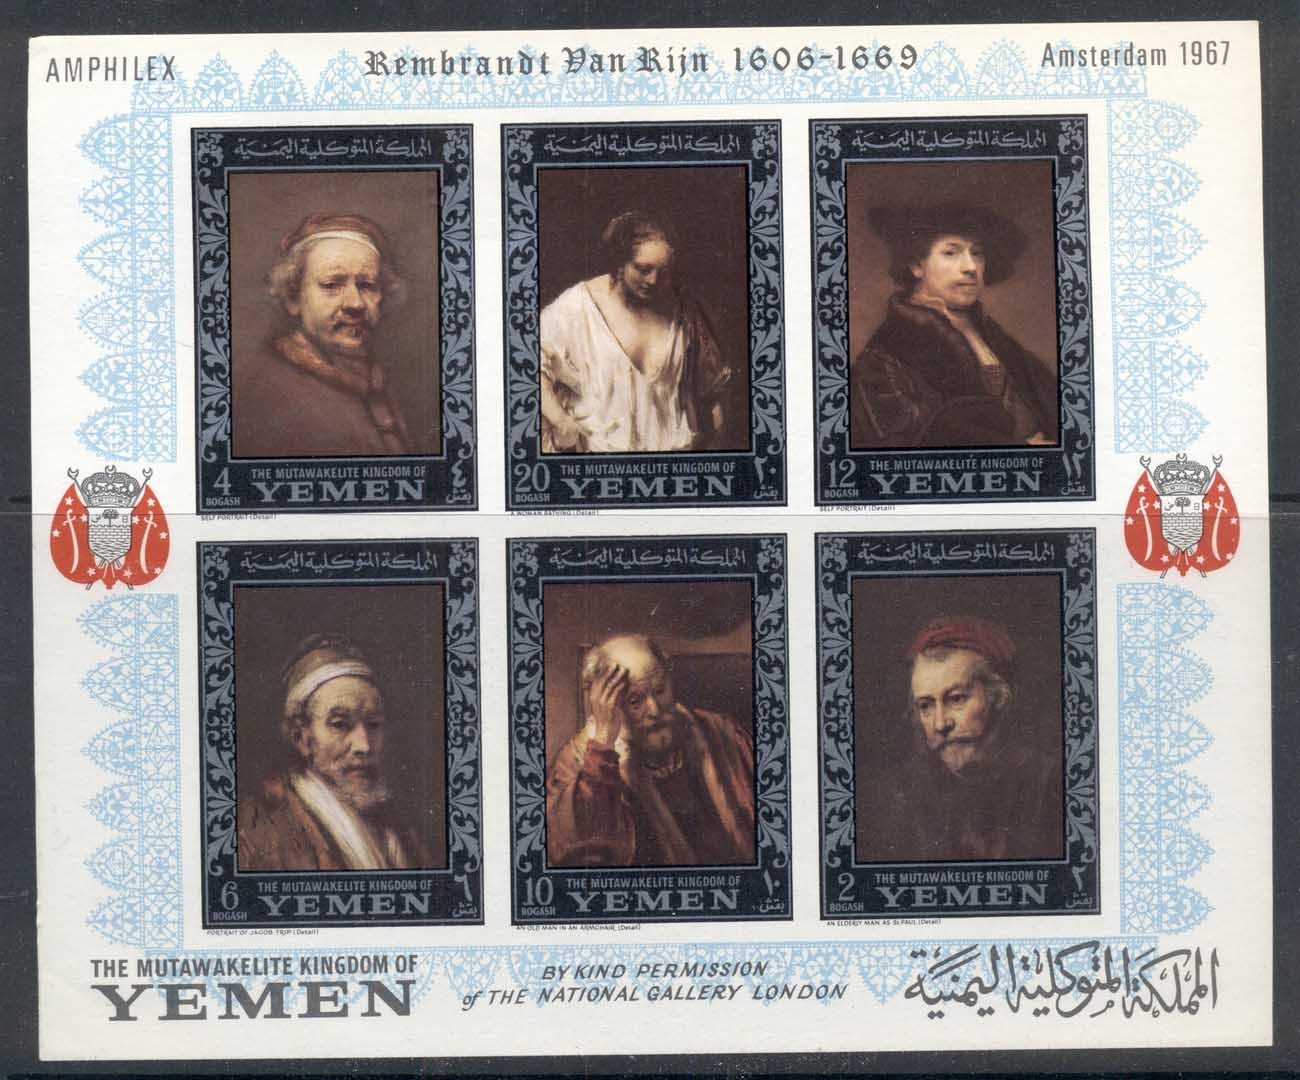 Yemen Kingdom 1967 Mi#MS37B Rembrandt Paintings, Amphilex Stamp Ex, silver borders MS IMPERF MUH